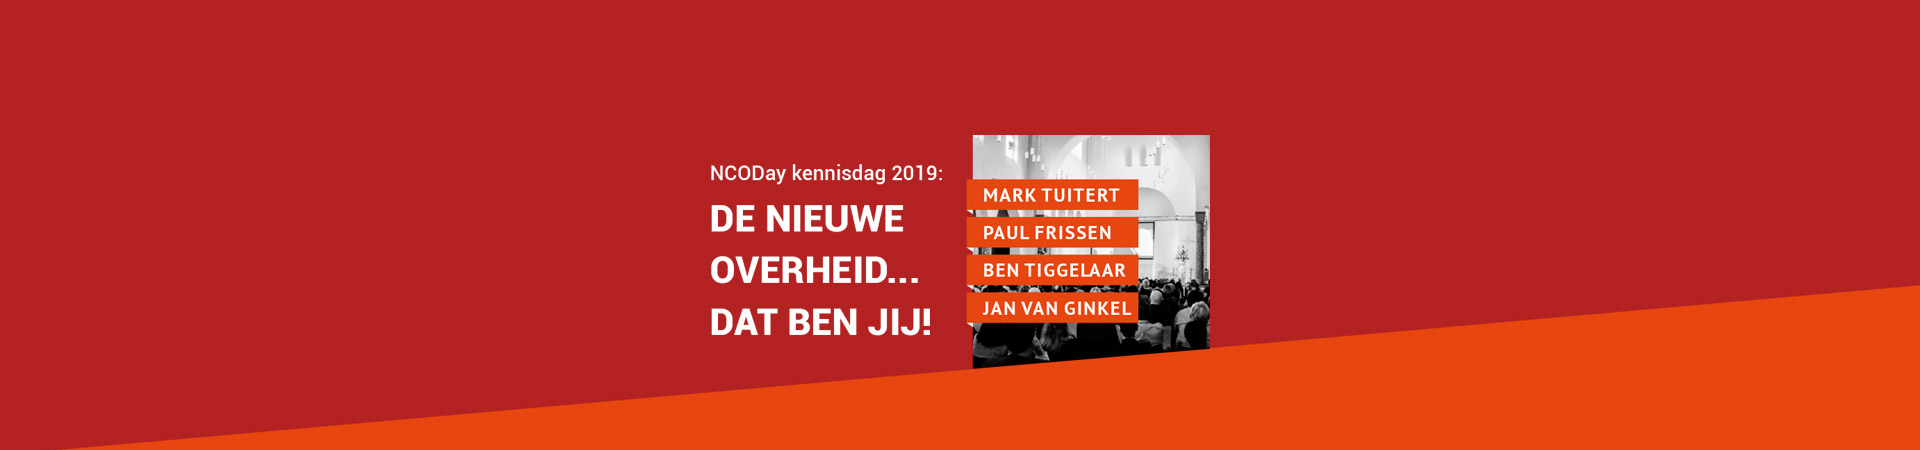 kennisdag, NCOD, Interwerk, advies, detachering, NCODay, evenement, ambtenaren, kennis, delen, inspirerend, Jan van Ginkel, Mark Tuitert, Paul Frissen, Ben Tiggelaar